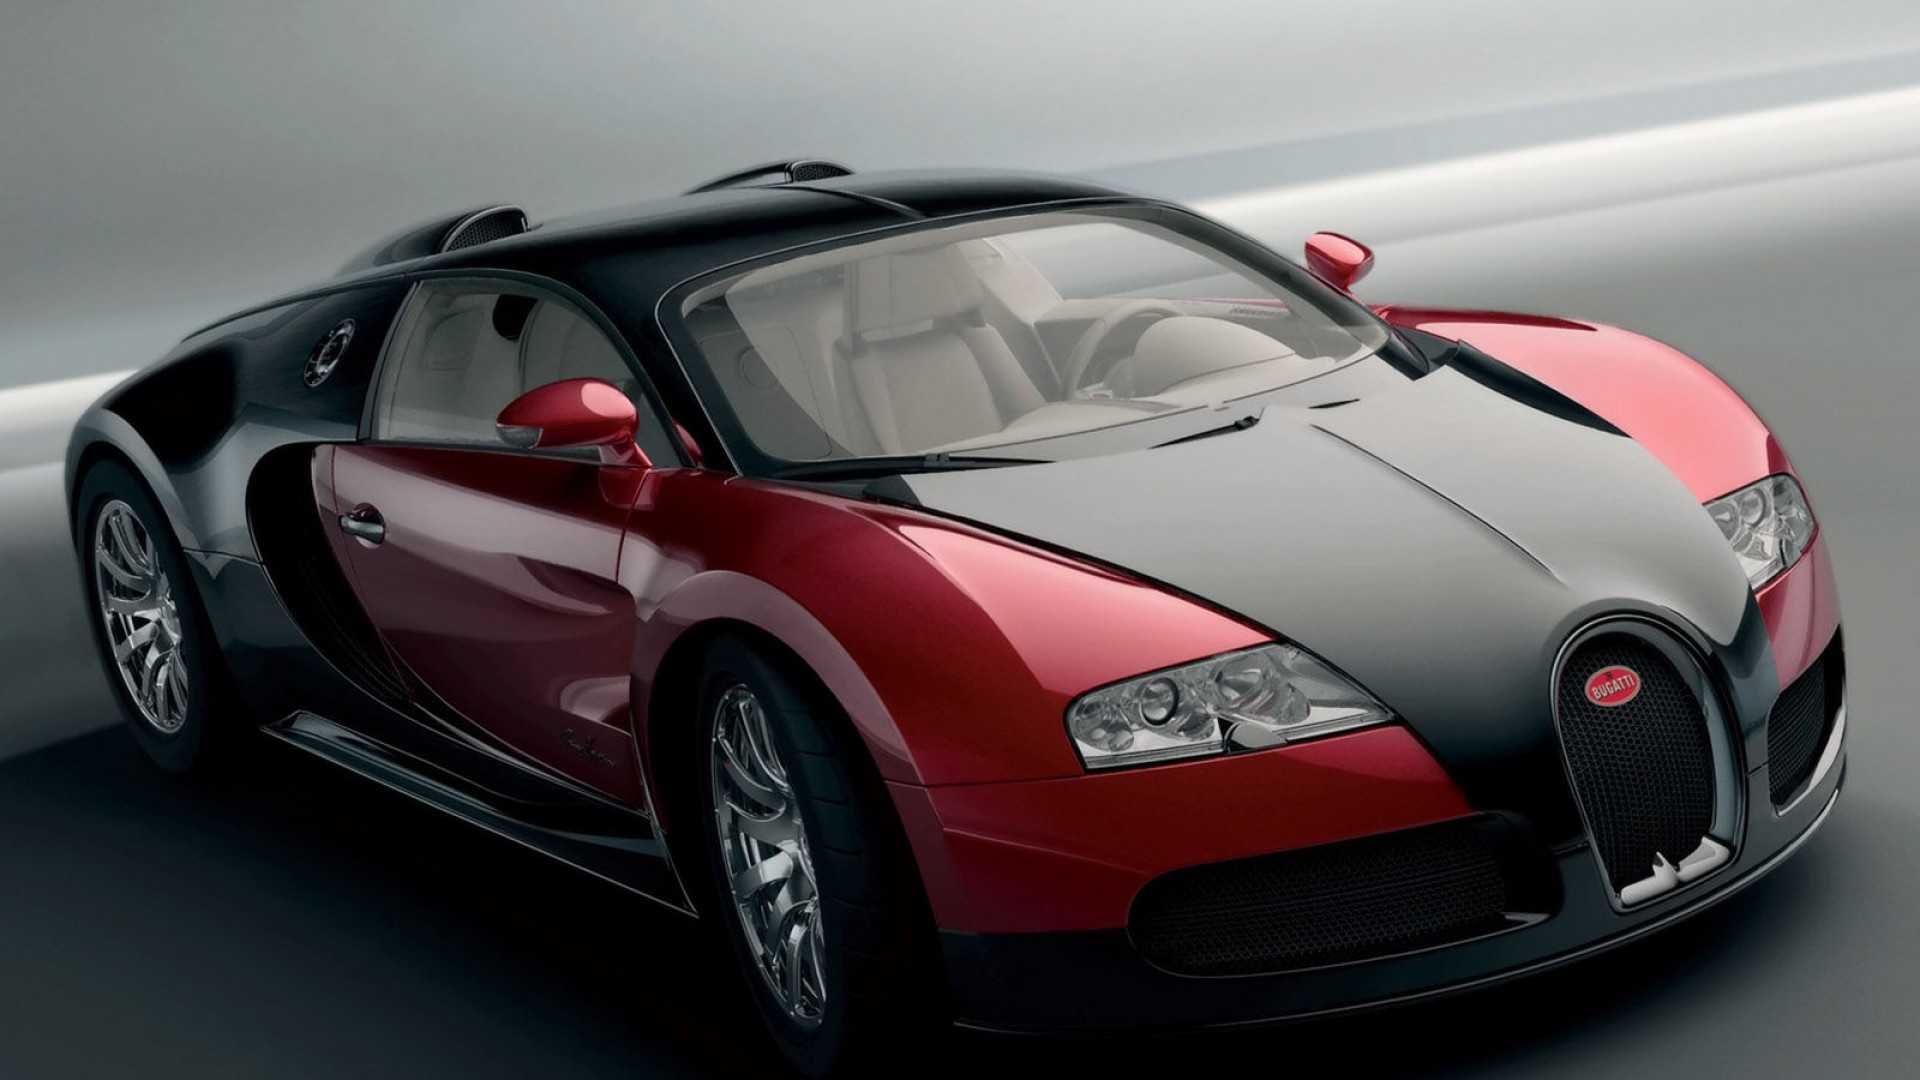 bugatti veyron fr full hd desktop wallpapers 1080p. Black Bedroom Furniture Sets. Home Design Ideas